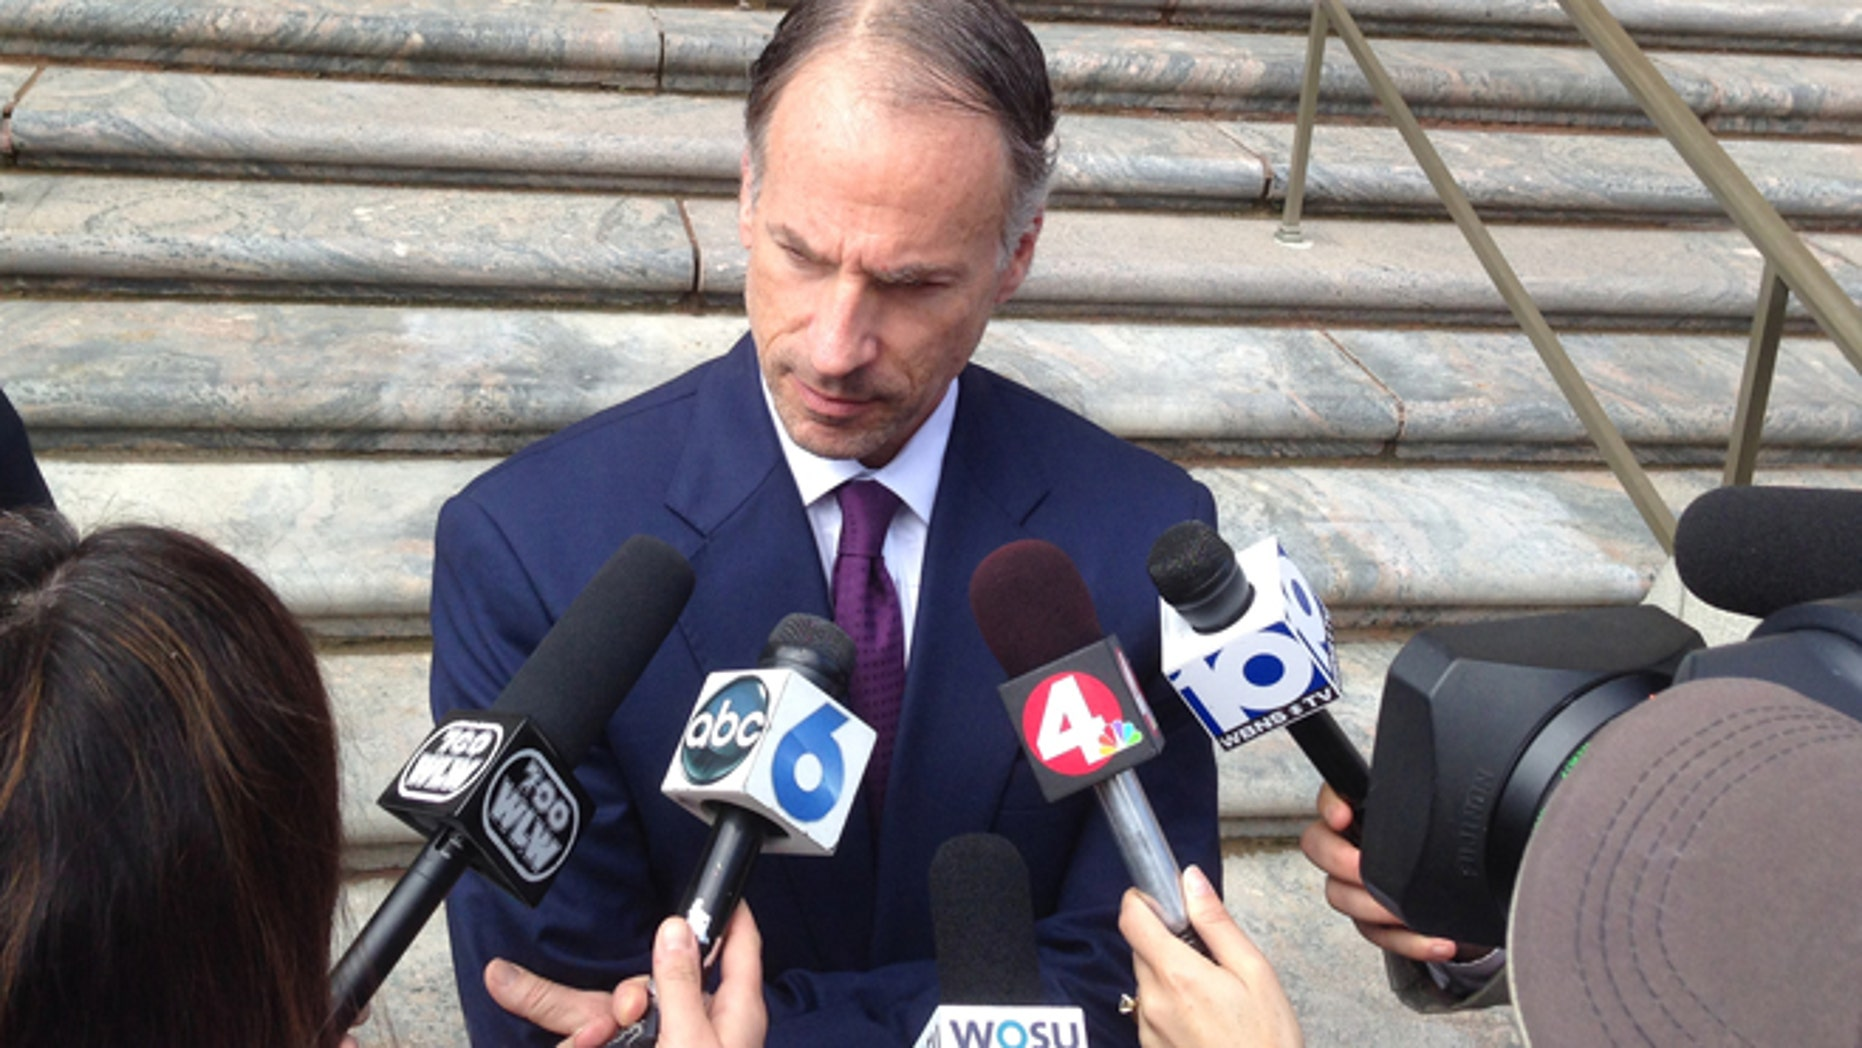 April 17, 2015: Sam Shamansky, defense attorney for accused terrorist Abdirahman Sheik Mohamud, answers questions after Mohamud entered not guilty pleas in federal court to charges of supporting terrorism, supporting a terrorist group and making a false statement involving international terrorism in Columbus, Ohio.